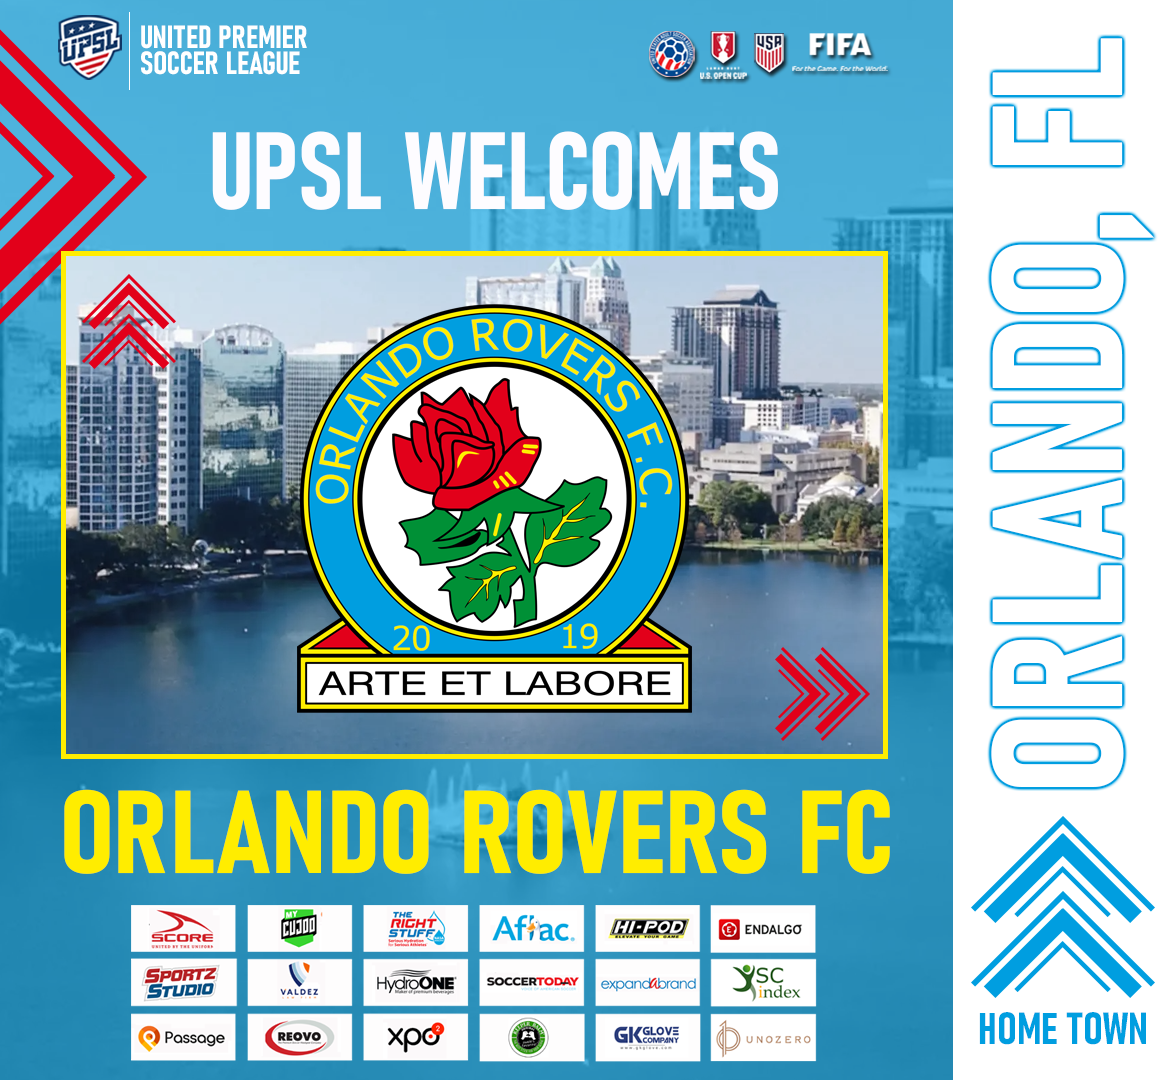 Welcome%20Orlando%20Rovers.png